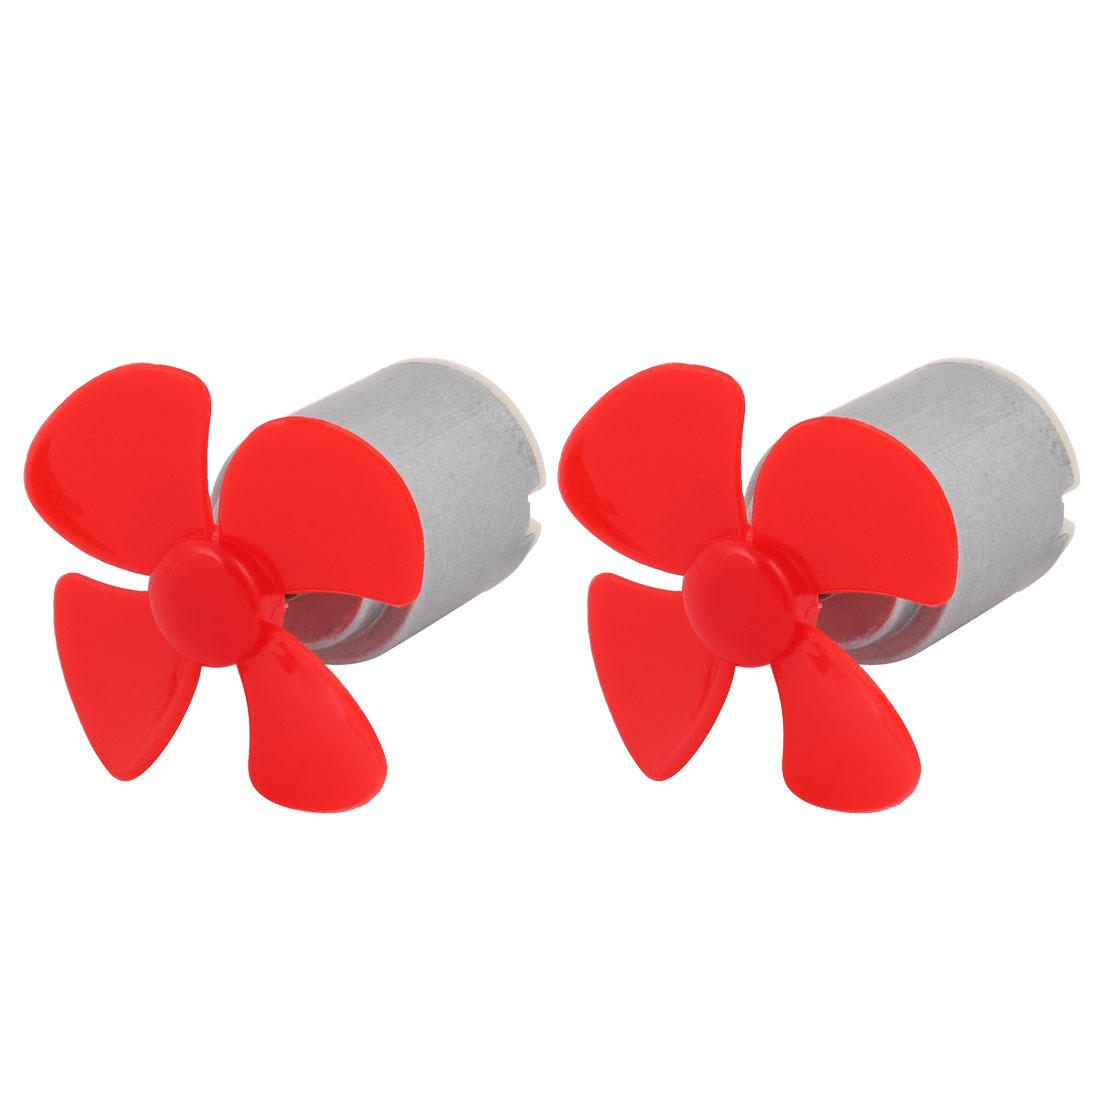 2pcs DC 3V 0.13A 17000RPM Red Strong Force Motor 4 Vanes 40mm Propeller for RC Aircraft